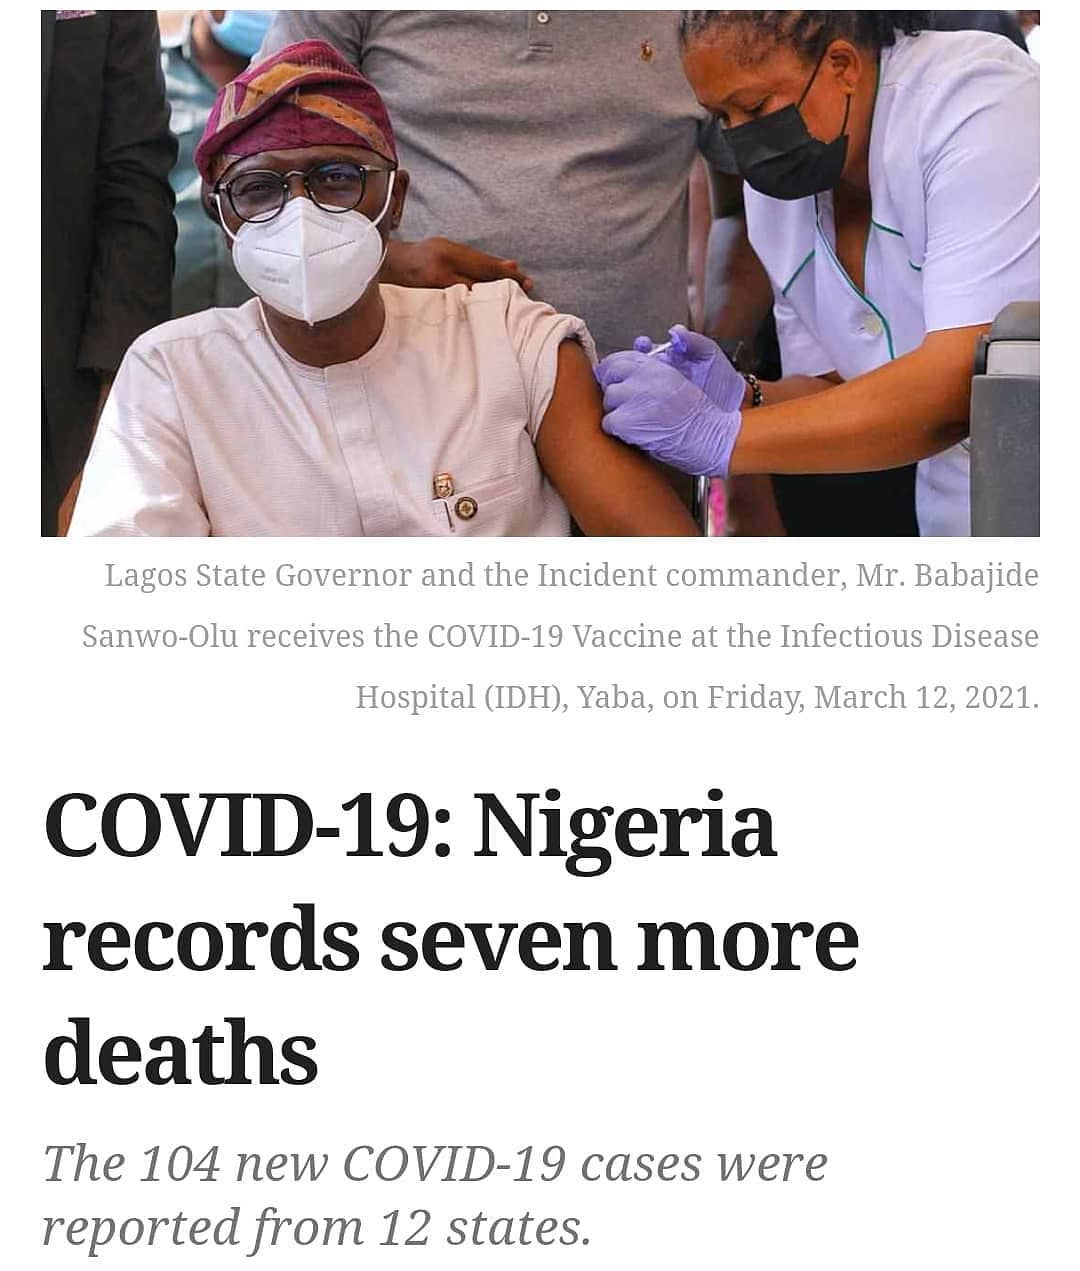 Daily deaths from COVID-19 in Nigeria seem to be resurging after almost two weeks of low figures as seven people died from the disease on Sunday.  The seven deaths on Sunday raised the fatalities in the country to 2,048 in total.  This is according to an update published by the Nigeria Centre for Disease Control (NCDC) Sunday night.  In continuation of a steady run of low infection figures, the country recorded 104 new cases under 24-hours, one of the lowest daily figures this year.  The new figure which is slightly higher than the 101 cases recorded a day earlier raised the total number of infections in the West African nation to 162,593.  In the past one week, daily infections have fallen below 300.  Also, a total of 150,308 people have recovered after treatment while about 11, 000 infections are still active in the country.  Specifics  The 104 new cases were reported from 12 states – Lagos (48), Enugu (16), Kwara (8), Kaduna (6), Plateau (5), Kano (5), Rivers (4), FCT(4), Ogun (4), Edo (2), Ekiti (1) and Katsina (1).  Lagos had the highest figure with 48 new cases on Sunday followed by Enugu and Kwara with 16 and 8 new cases respectively.